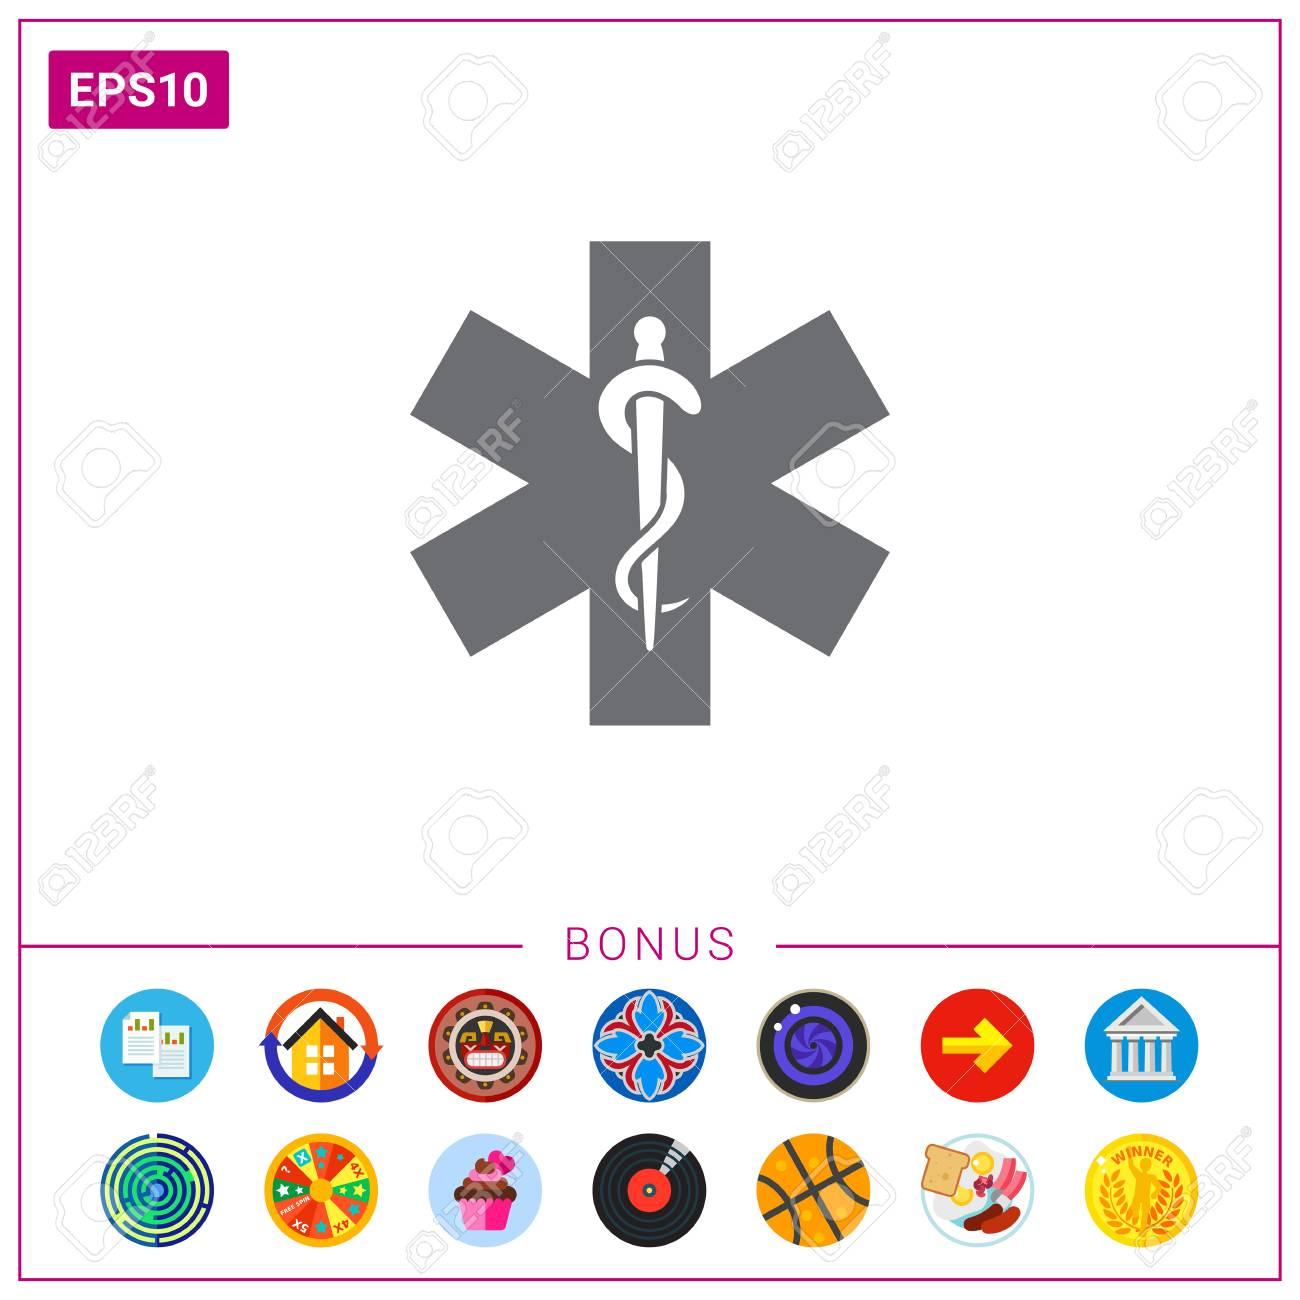 Medical Emergency Symbol Royalty Free Cliparts Vectors And Stock